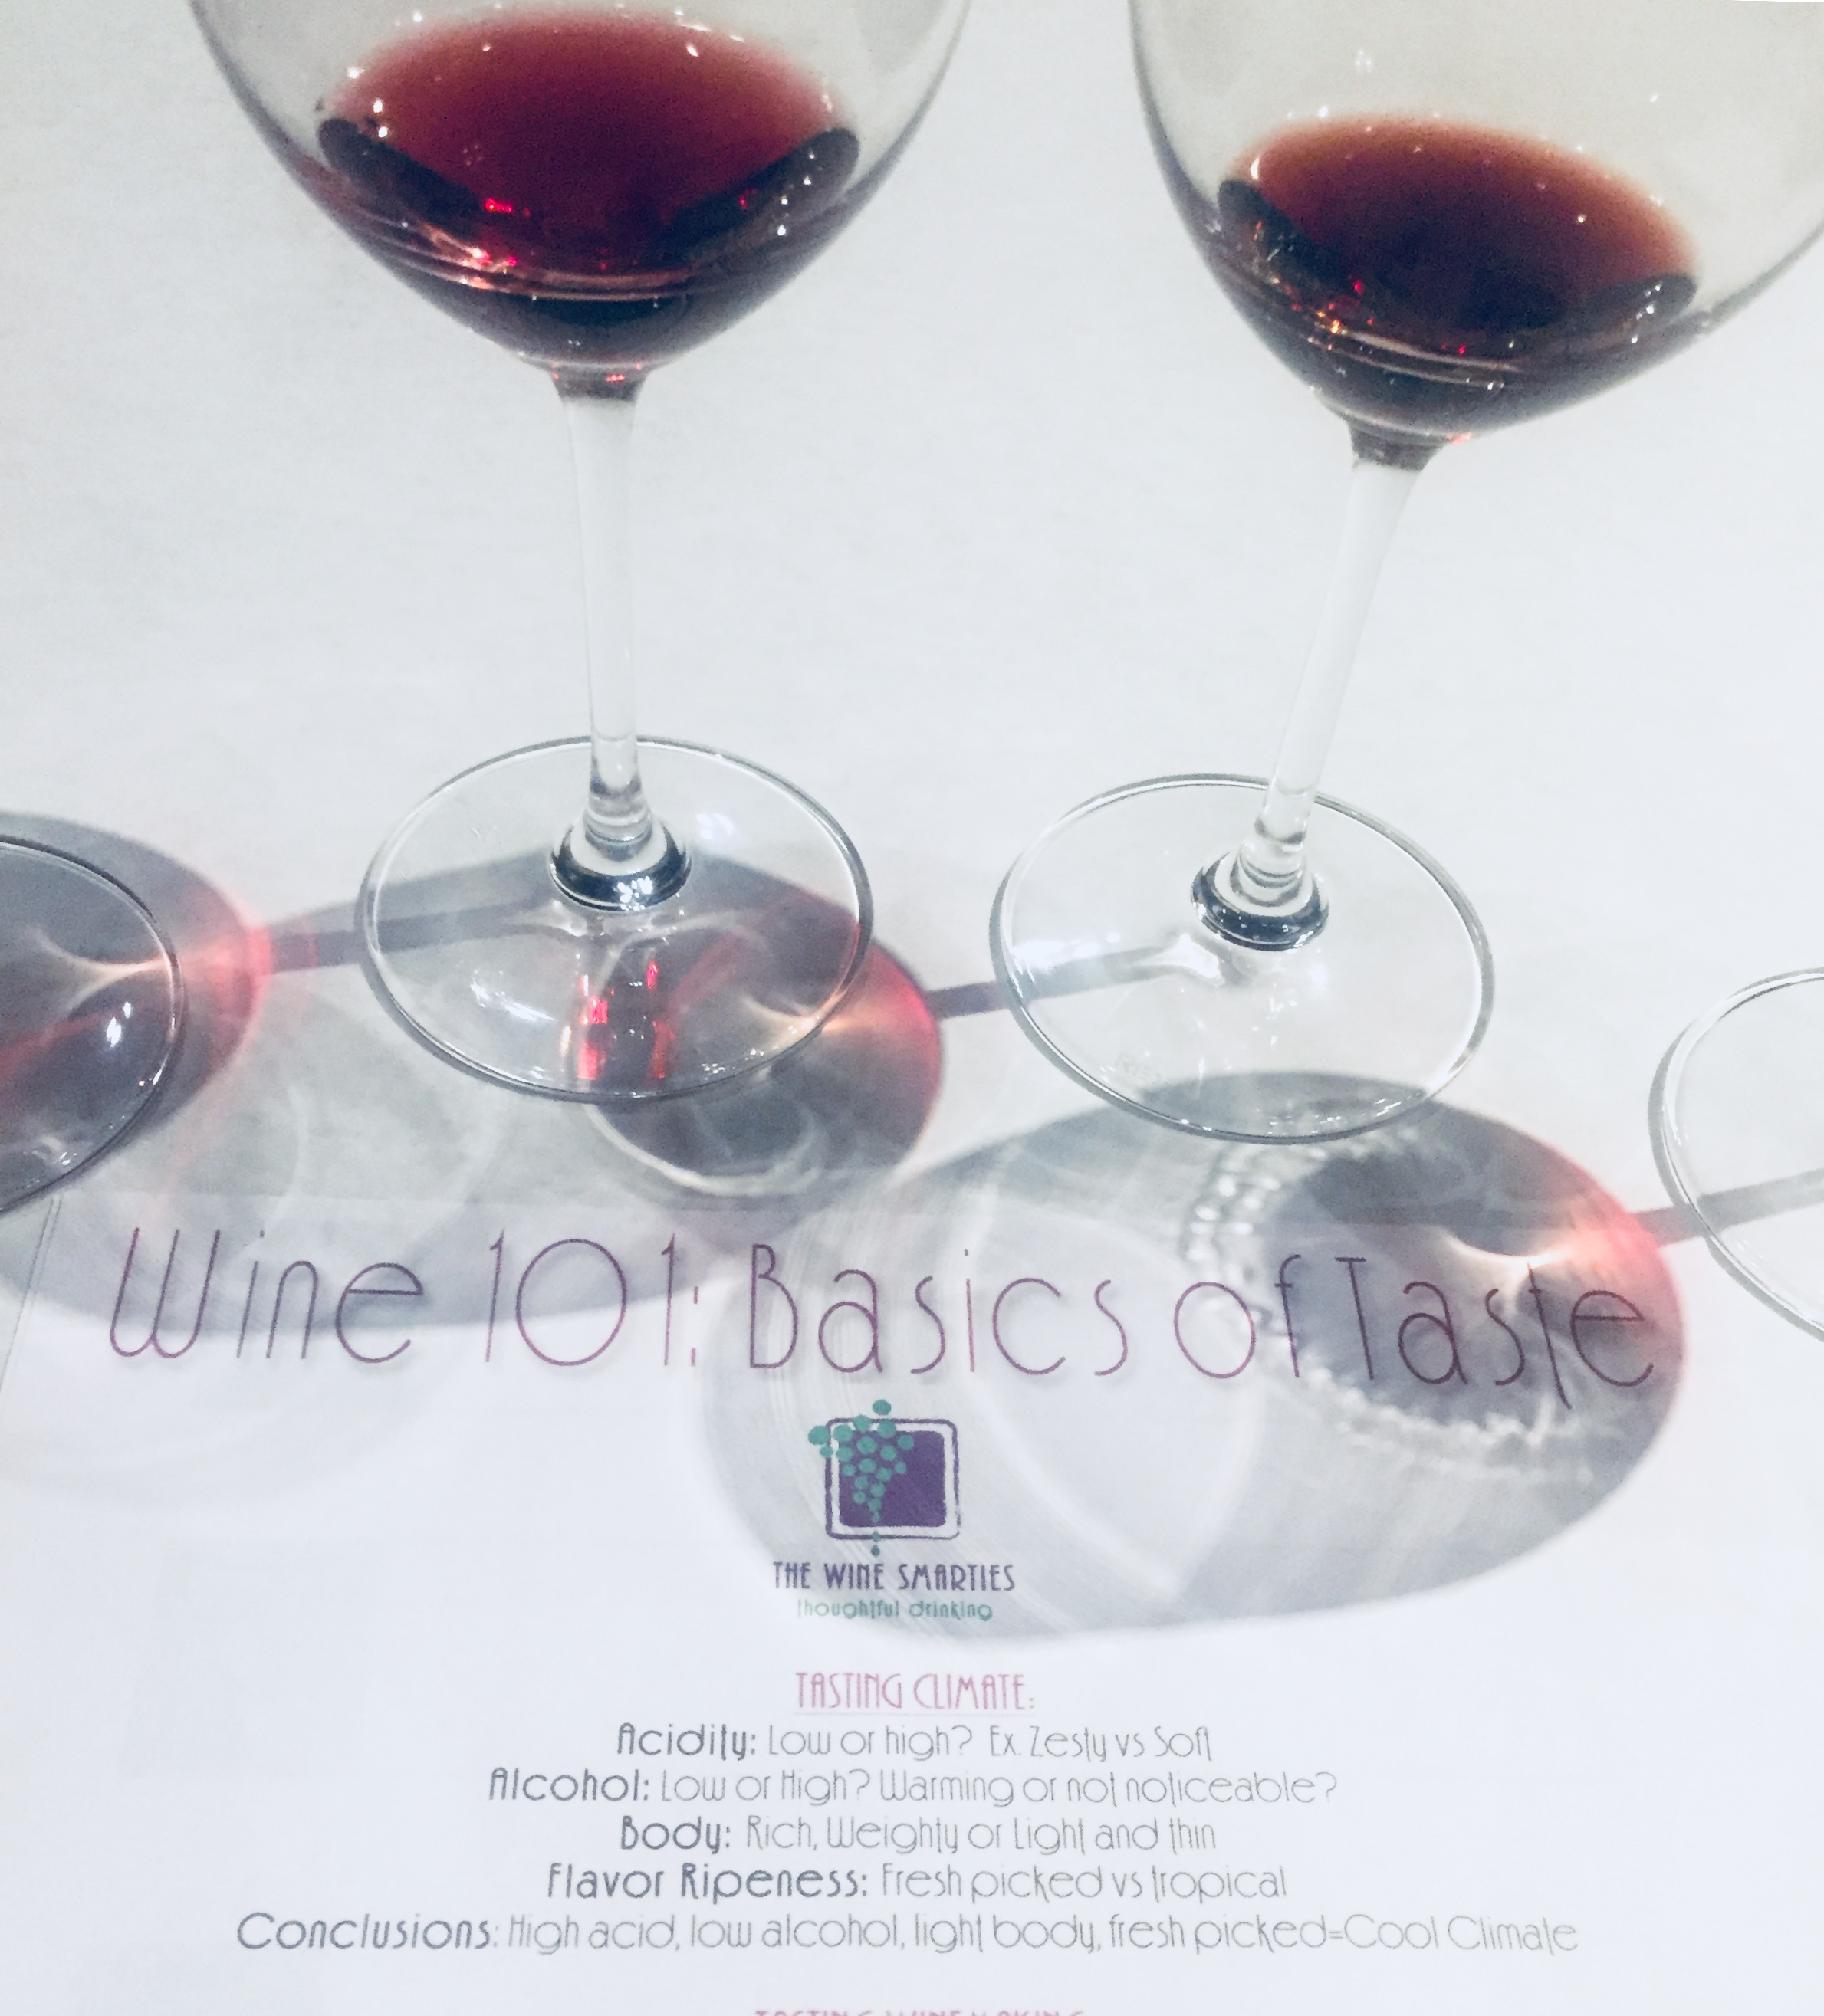 Blind Tasting with an MW